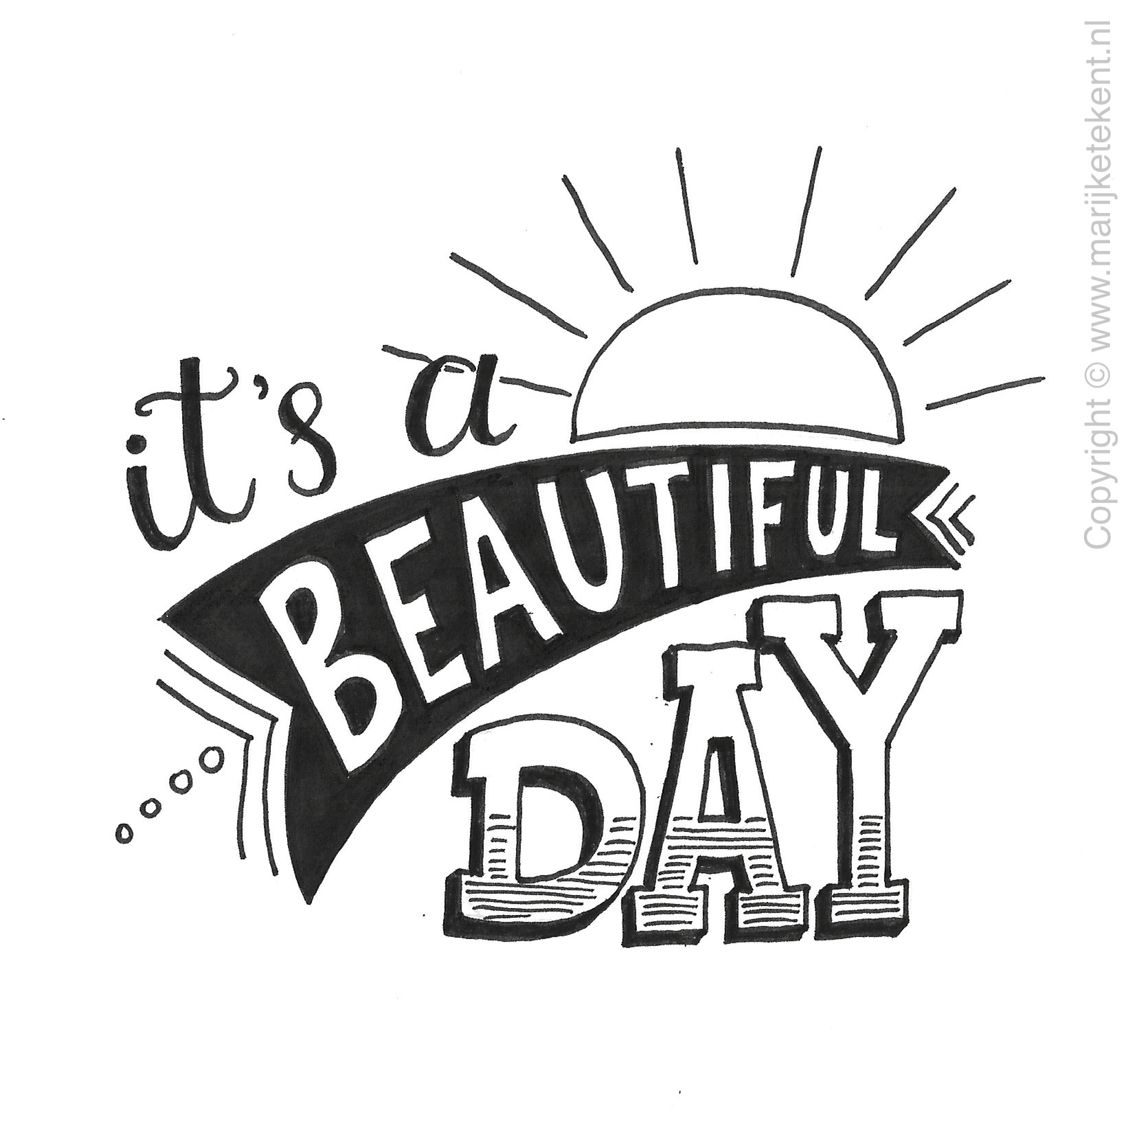 1136x1136 It's A Beautiful Day Bampw Typography Calligraphy